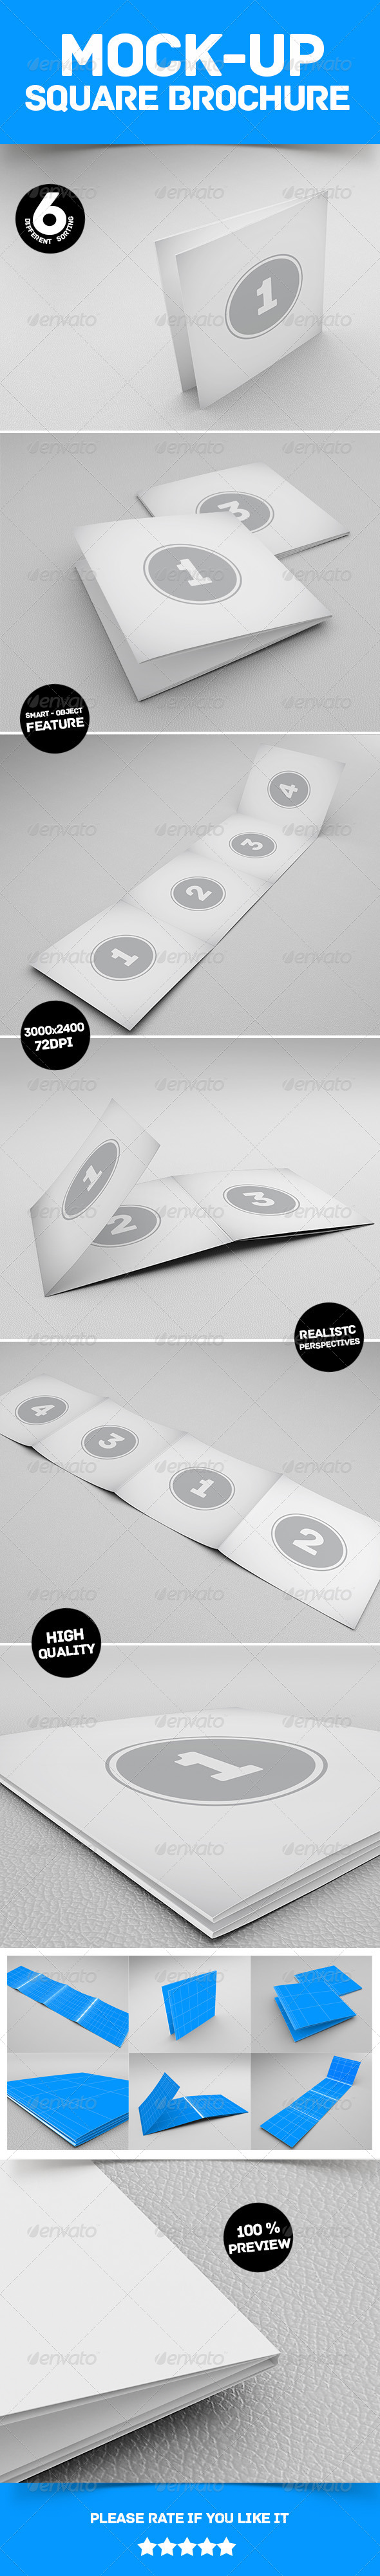 GraphicRiver Mockup Square Brochure 6636028